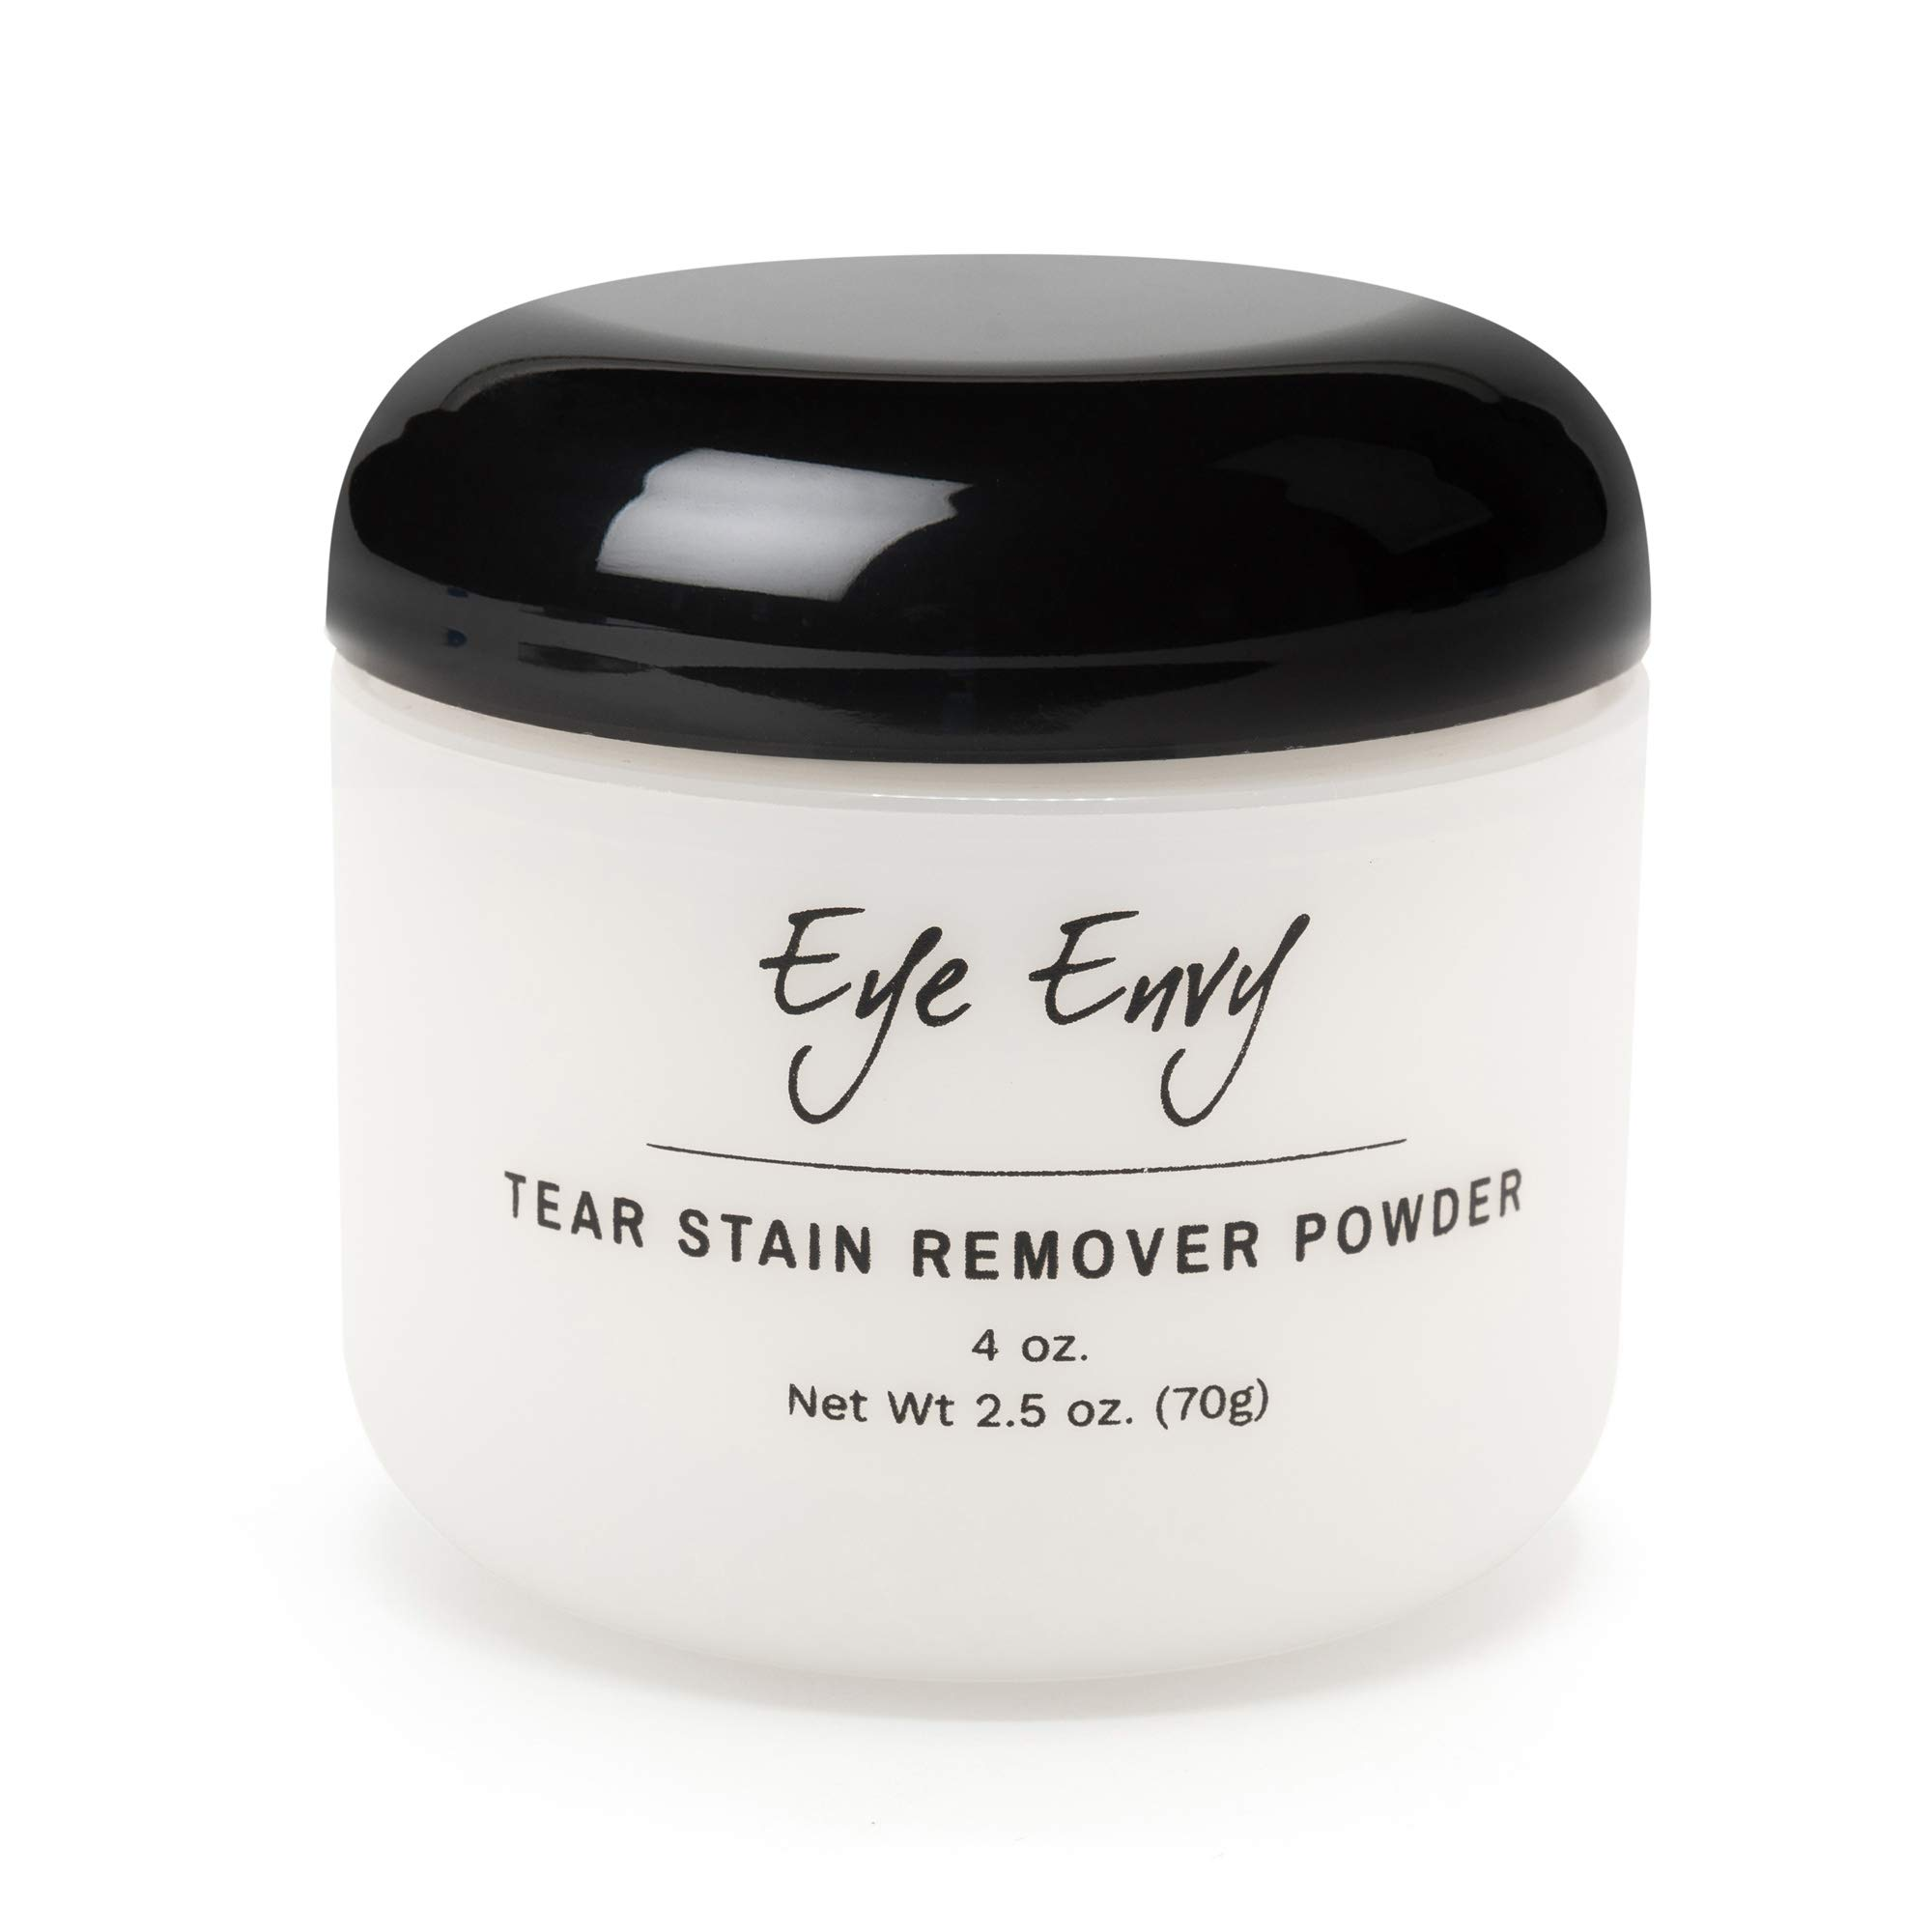 Eye Envy Tear Stain Remover Powder for Dogs and Cats|100% natural, safe|Apply around eyes|Absorbs and repels tears|Keeps area dry|Treats the cause of staining|Effective and non-irritating, 4oz